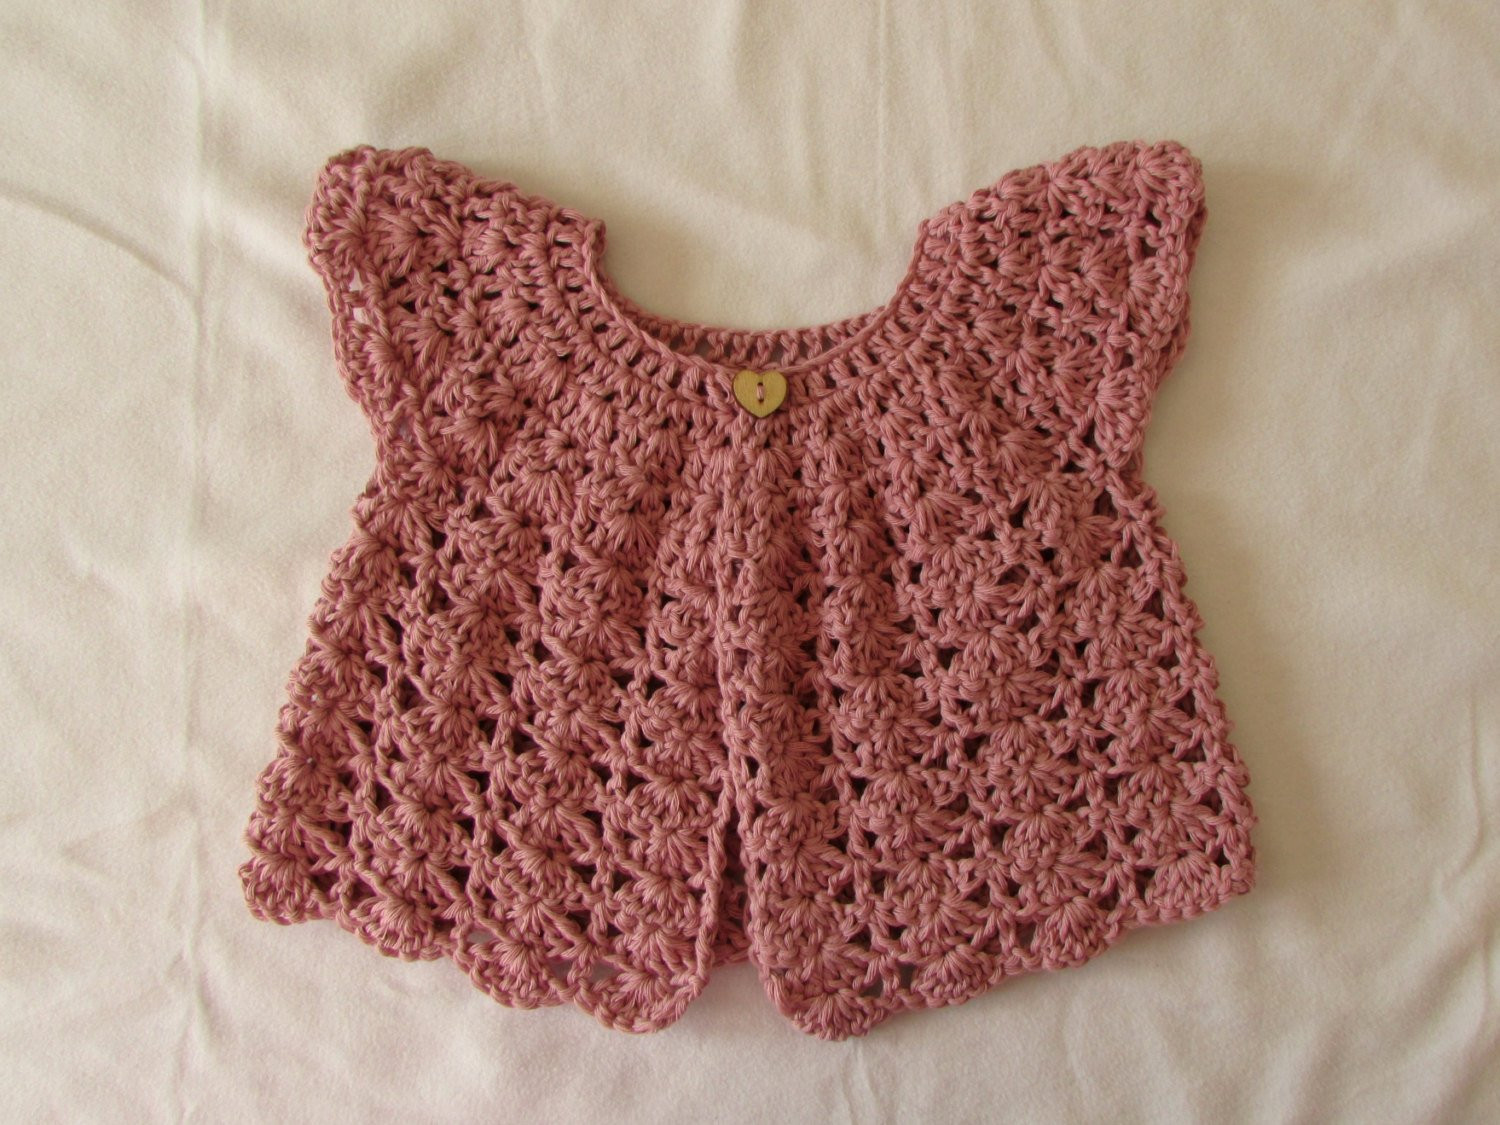 Crochet Baby Cardigan Luxury Crochet Shell Stitch Baby Girl S Cardigan Written Of Amazing 49 Pics Crochet Baby Cardigan